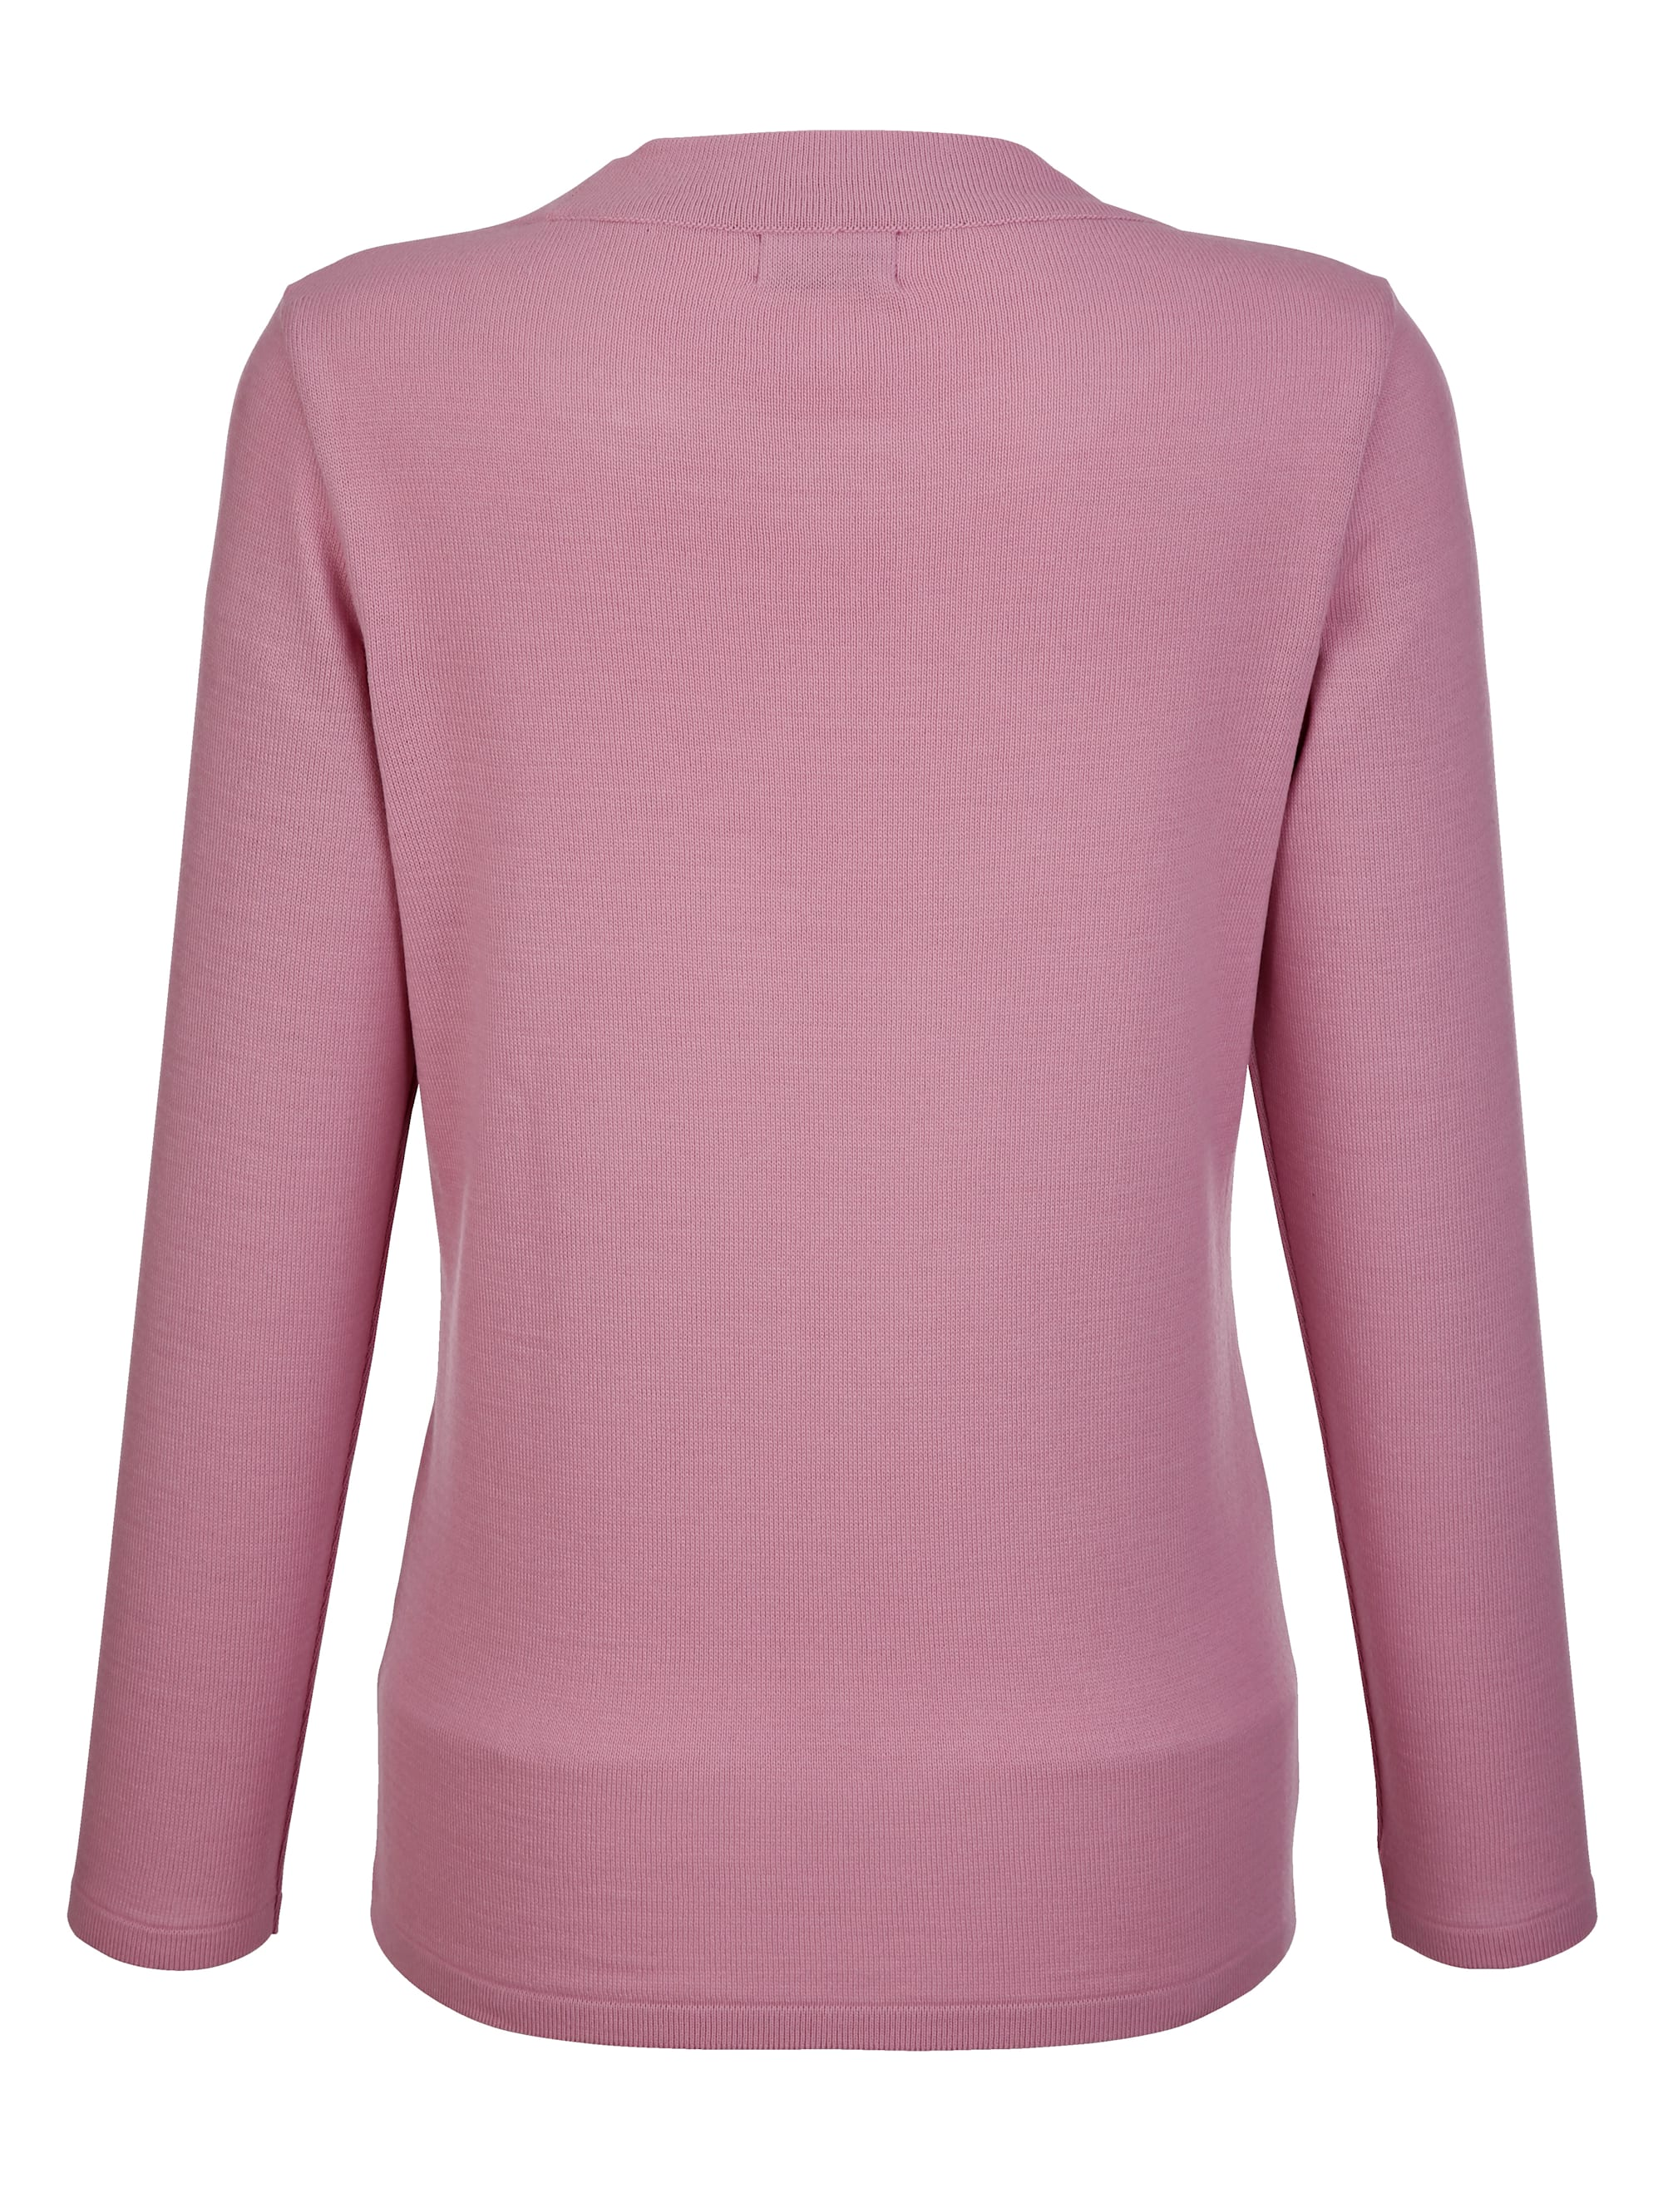 Dress In Pullover in Rosé günstig kaufen